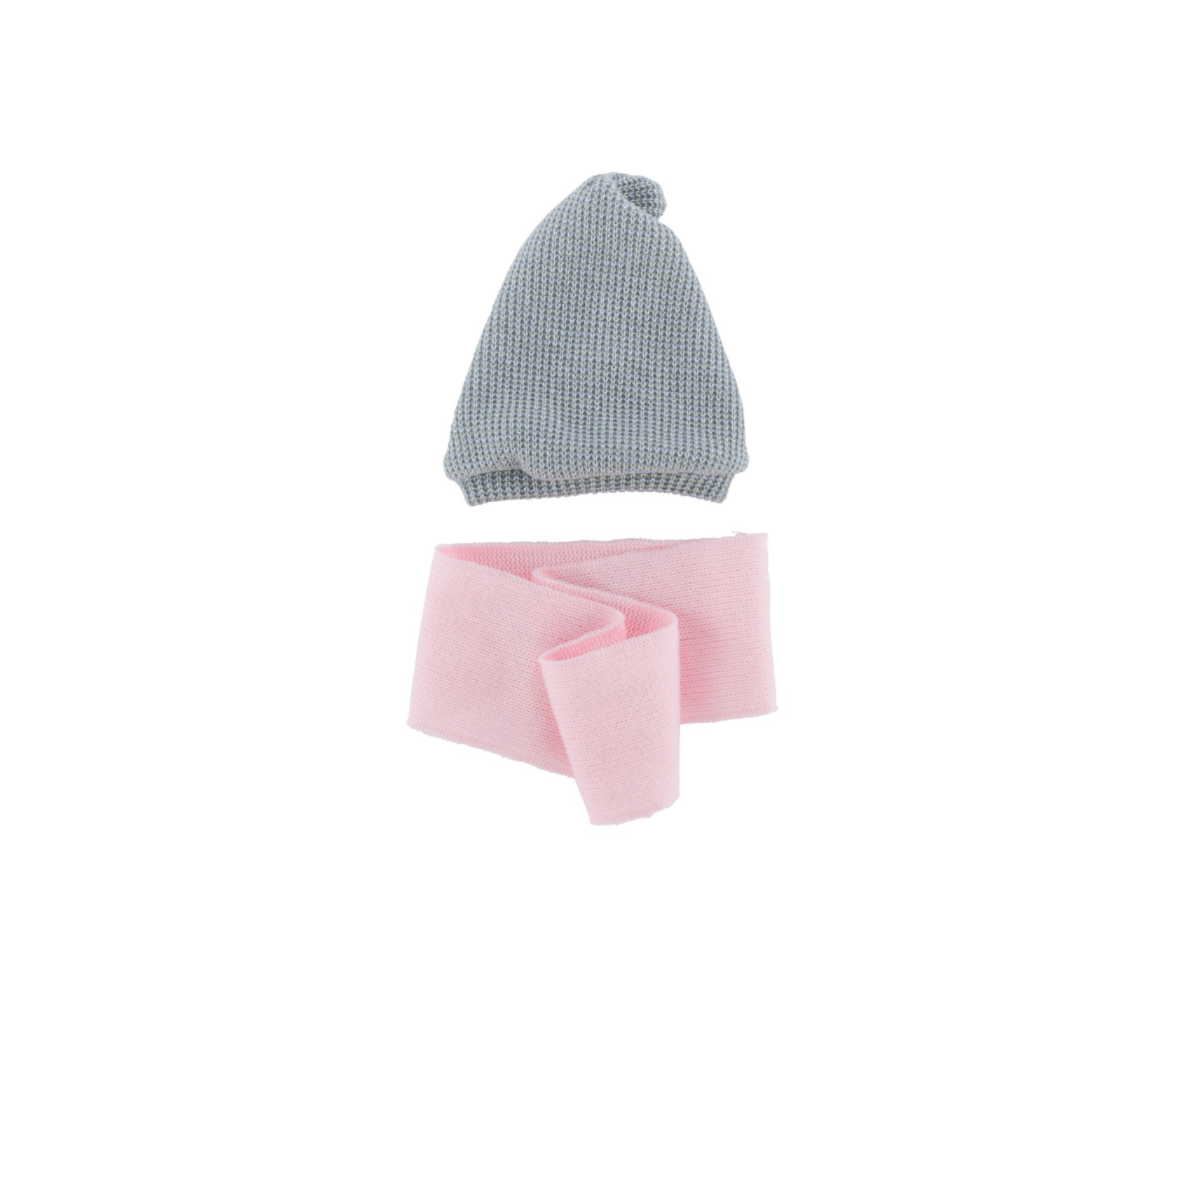 COROLLE DJB80-0 BONNET & SNOOD MA COROLLE 36 CM JEU JEUX JOUET NOEL FILLE GIRL 887961222791 VETEMENT HABIT DRESS CLOTHING WEAR APPAREL COMASOUND KARTEL CSK ONLINE